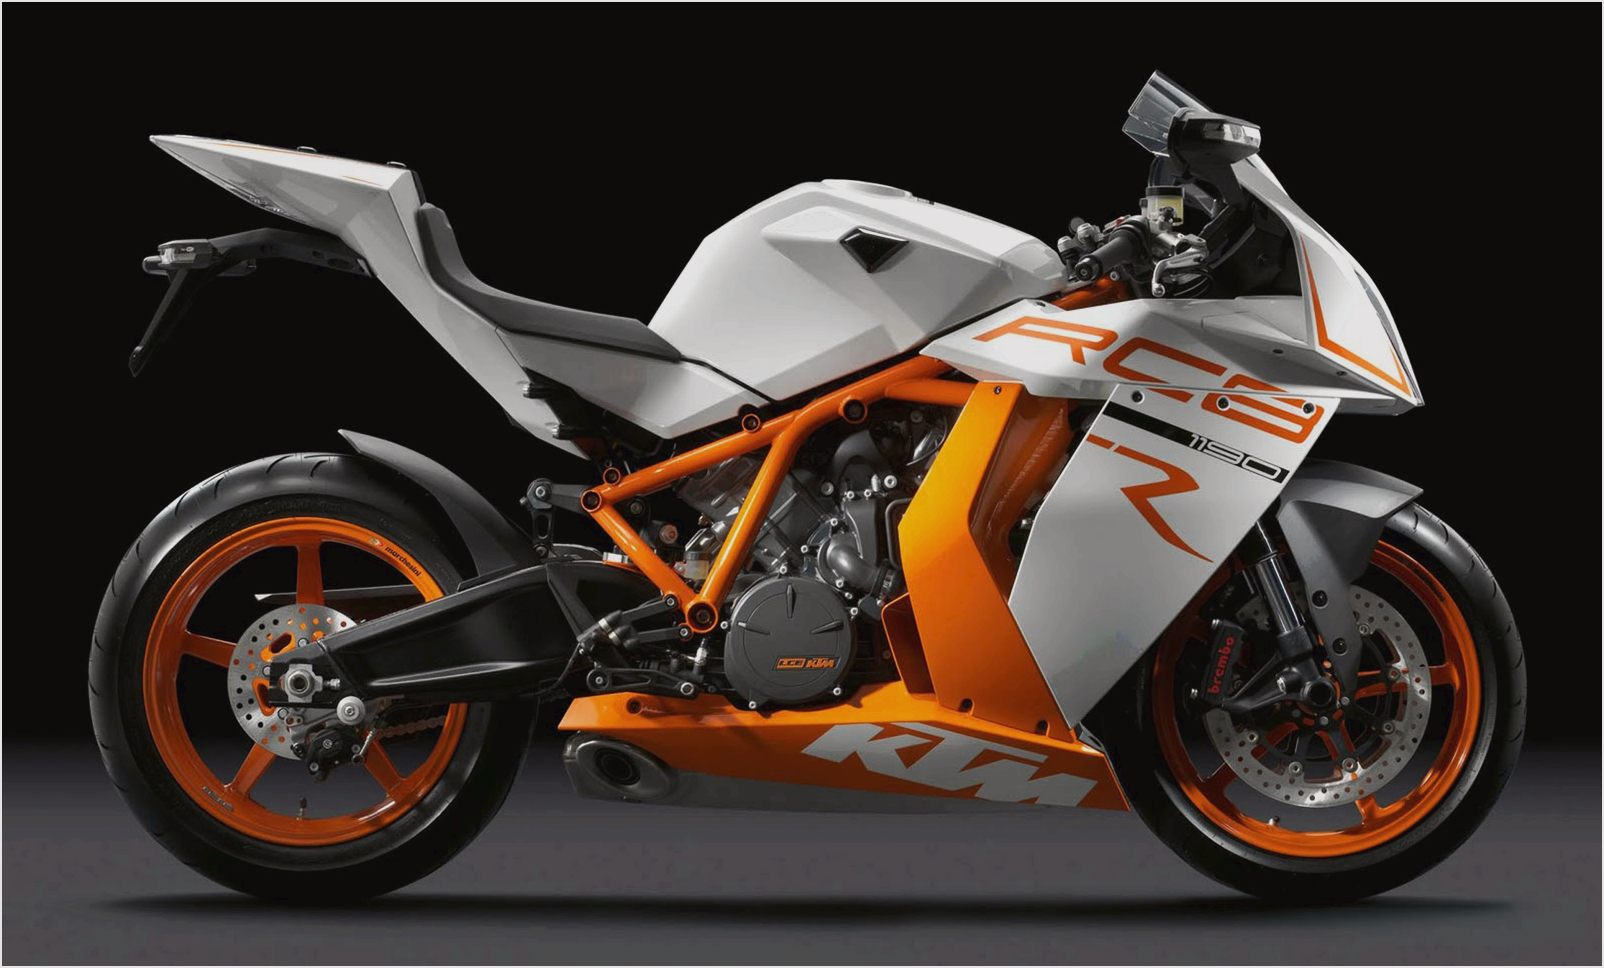 KTM 1190 RC8 R Red Bull Limited Edition 2010 images #86768